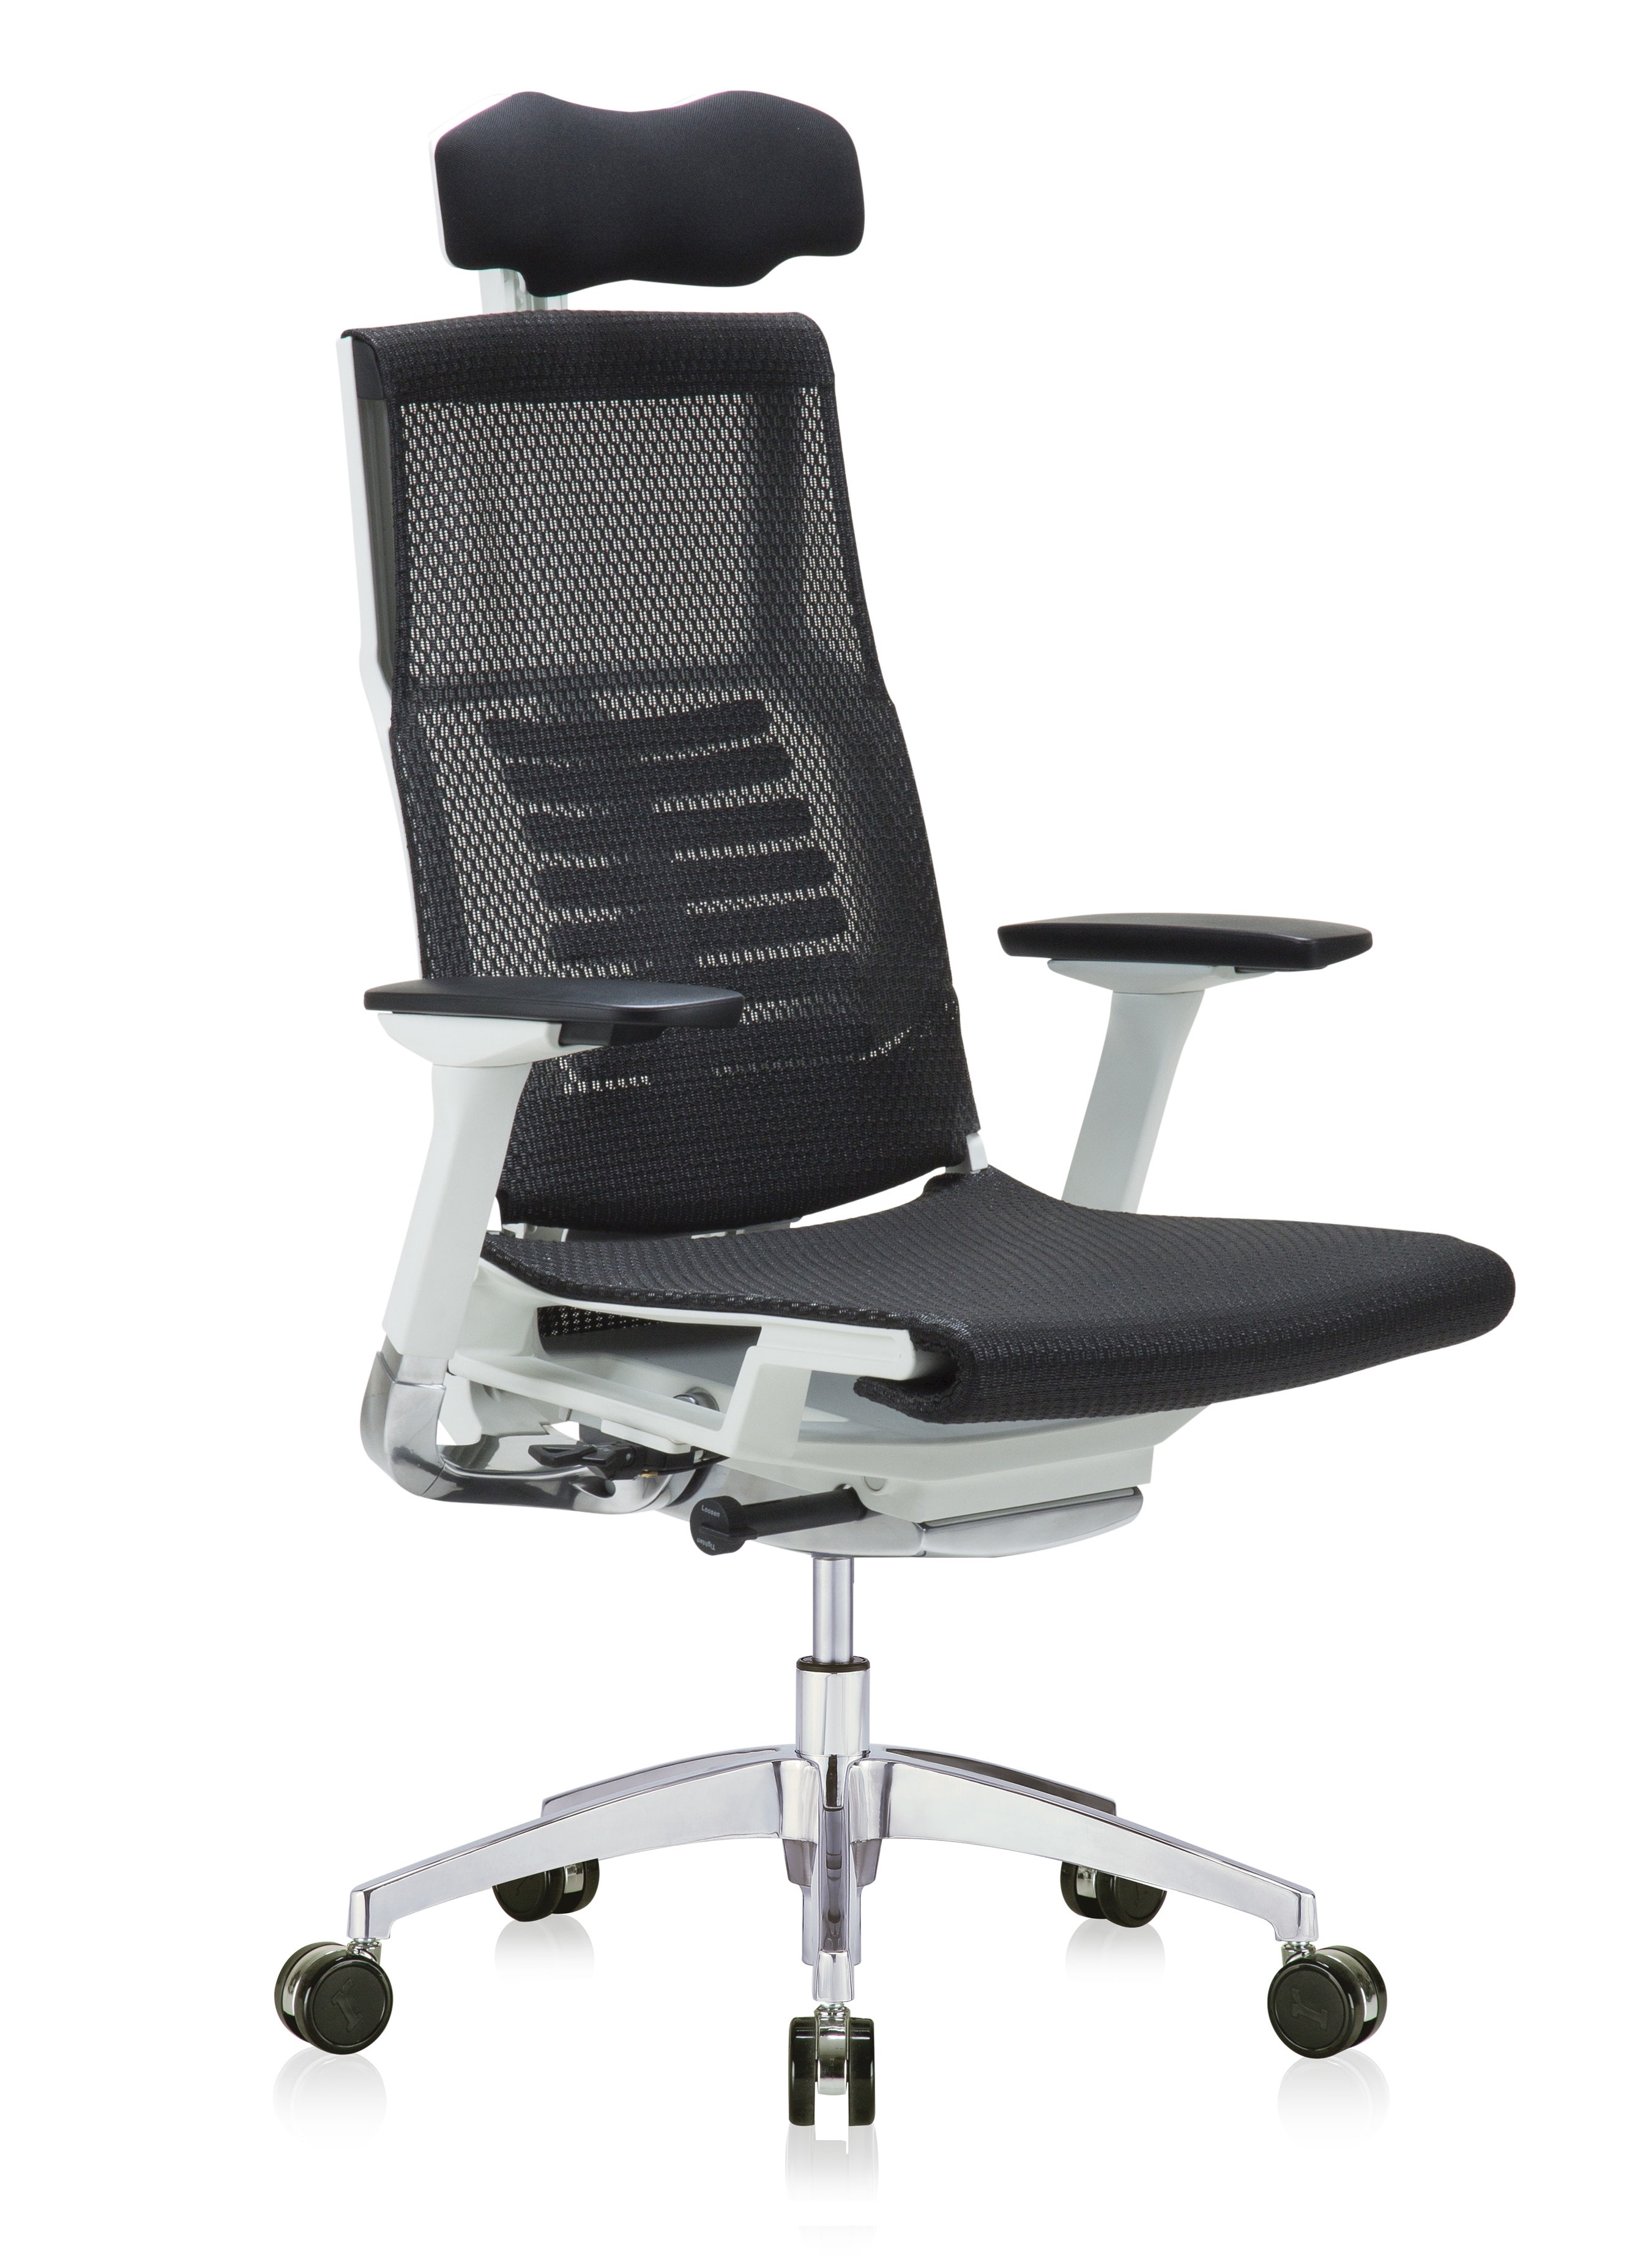 powerfit white frame office chair with headrest